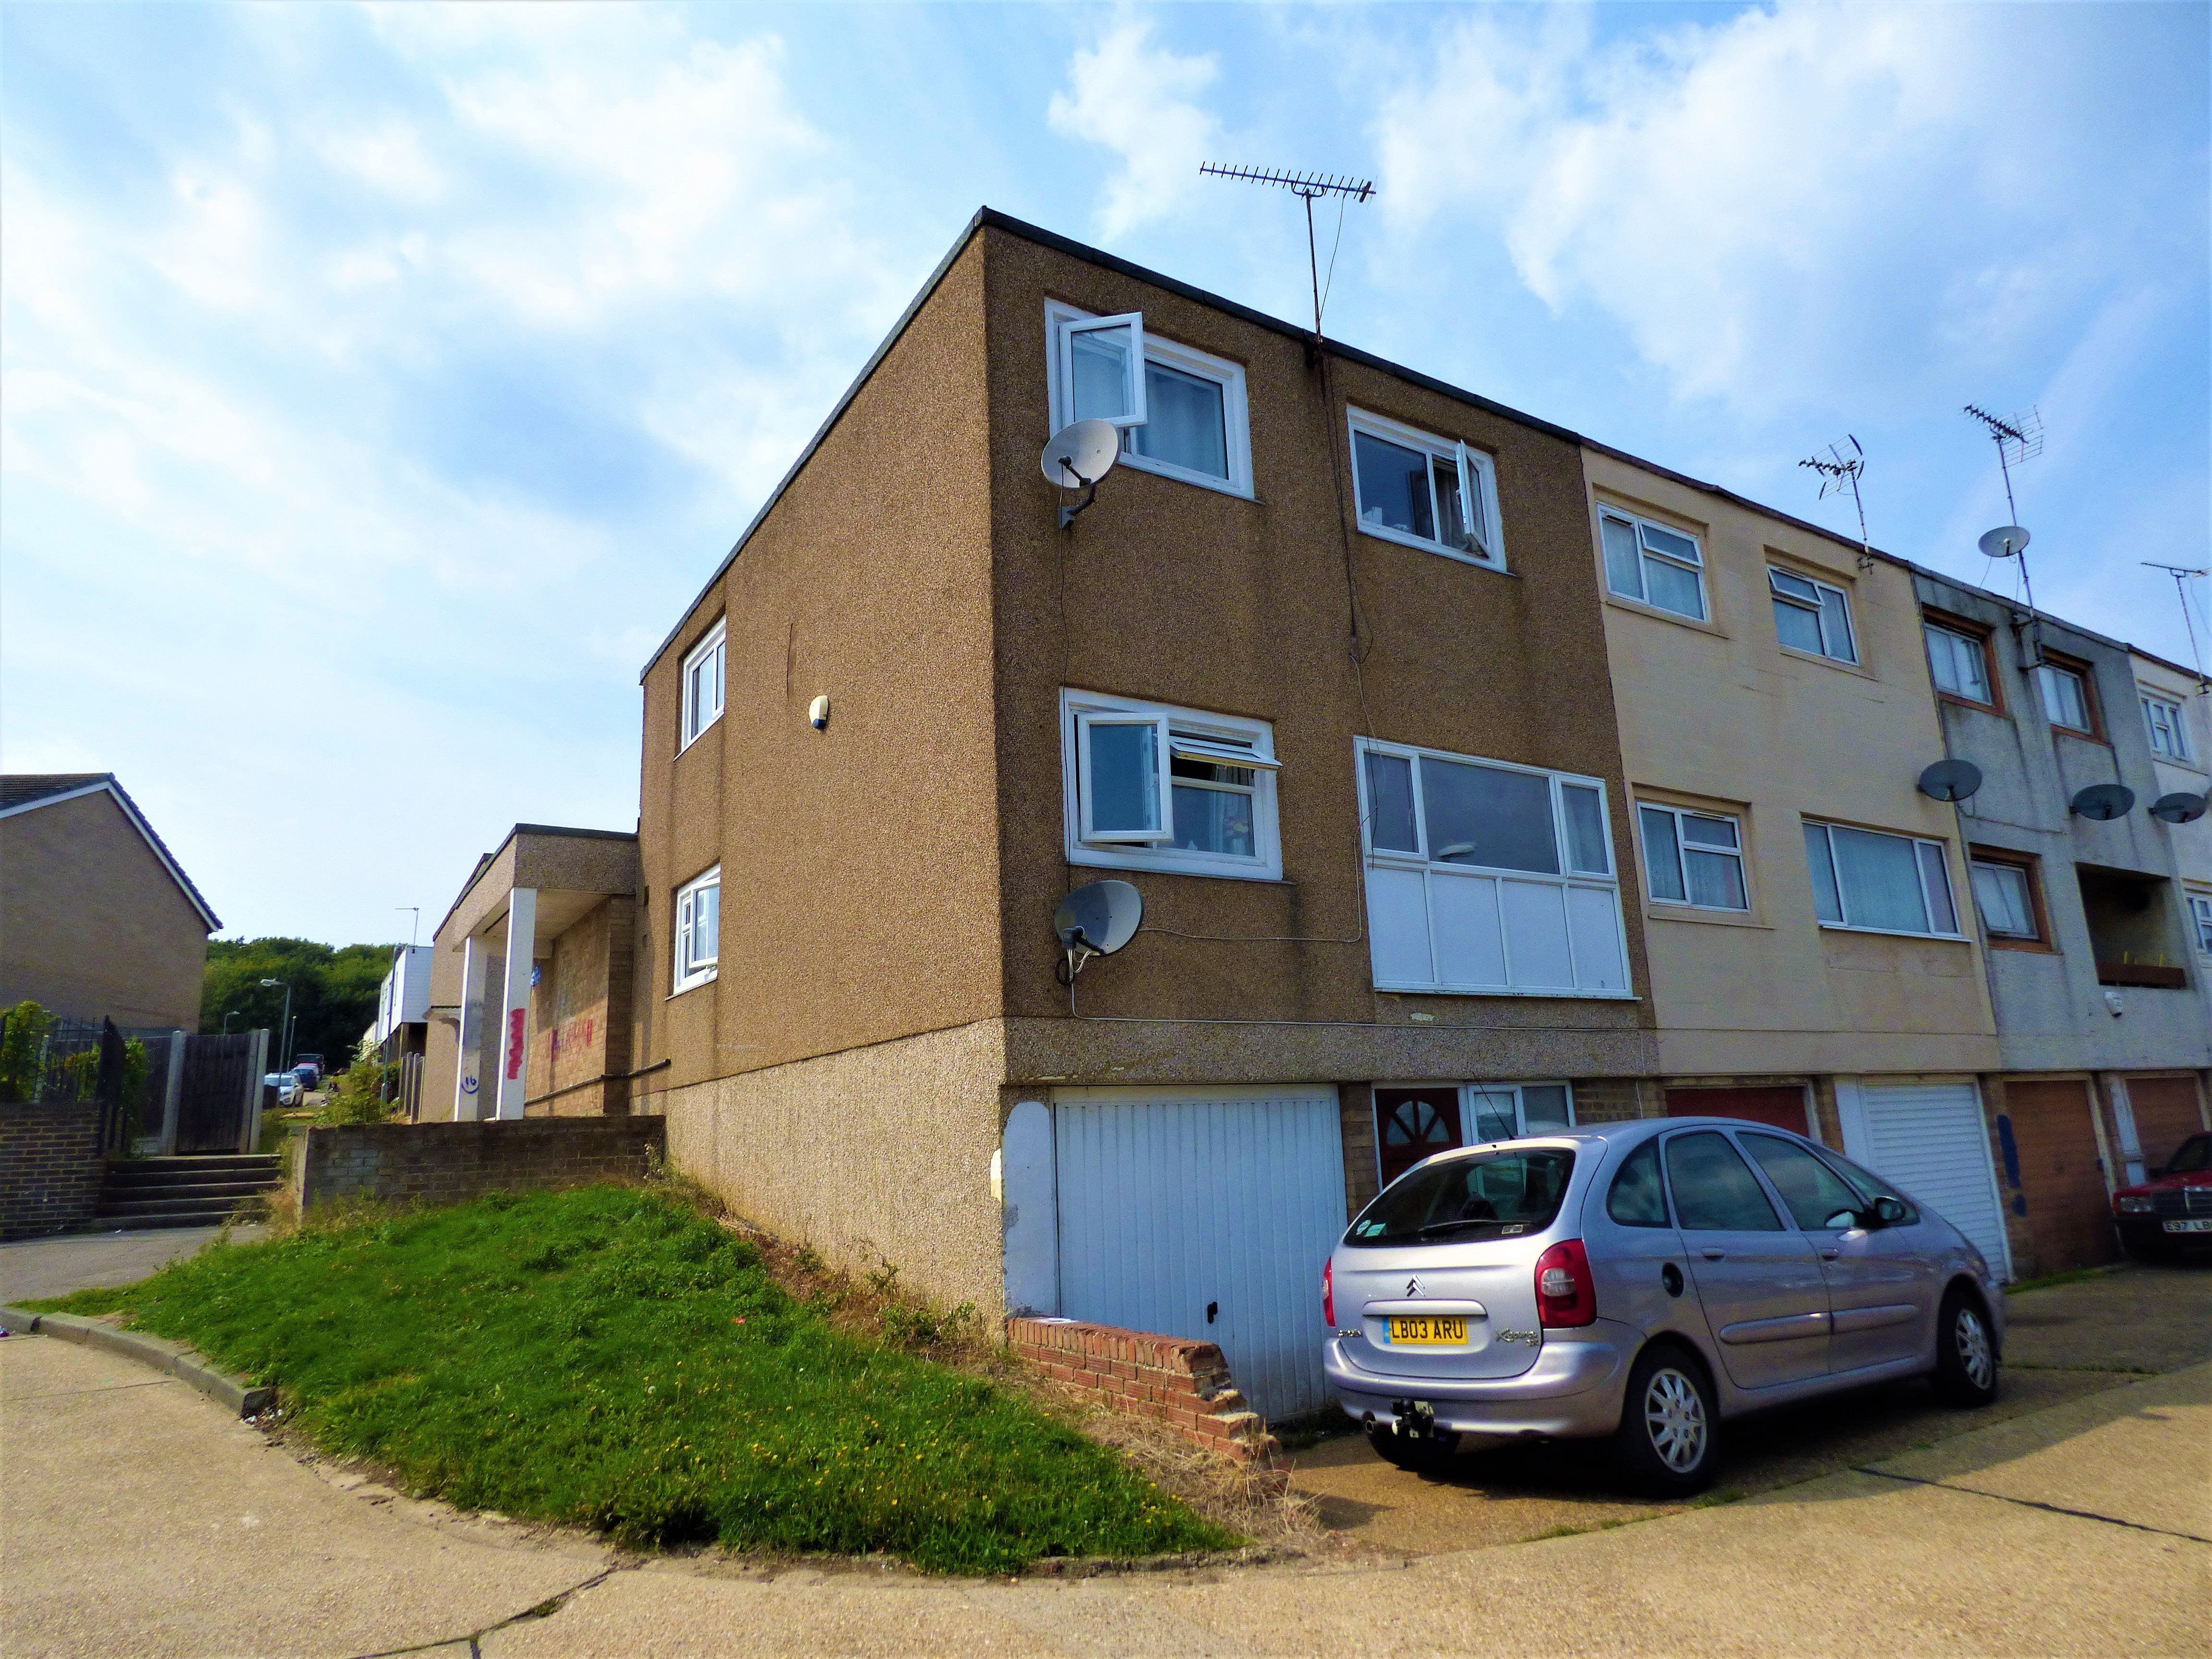 4 bed end of terrace house for sale in Swanstead, Basildon, SS16